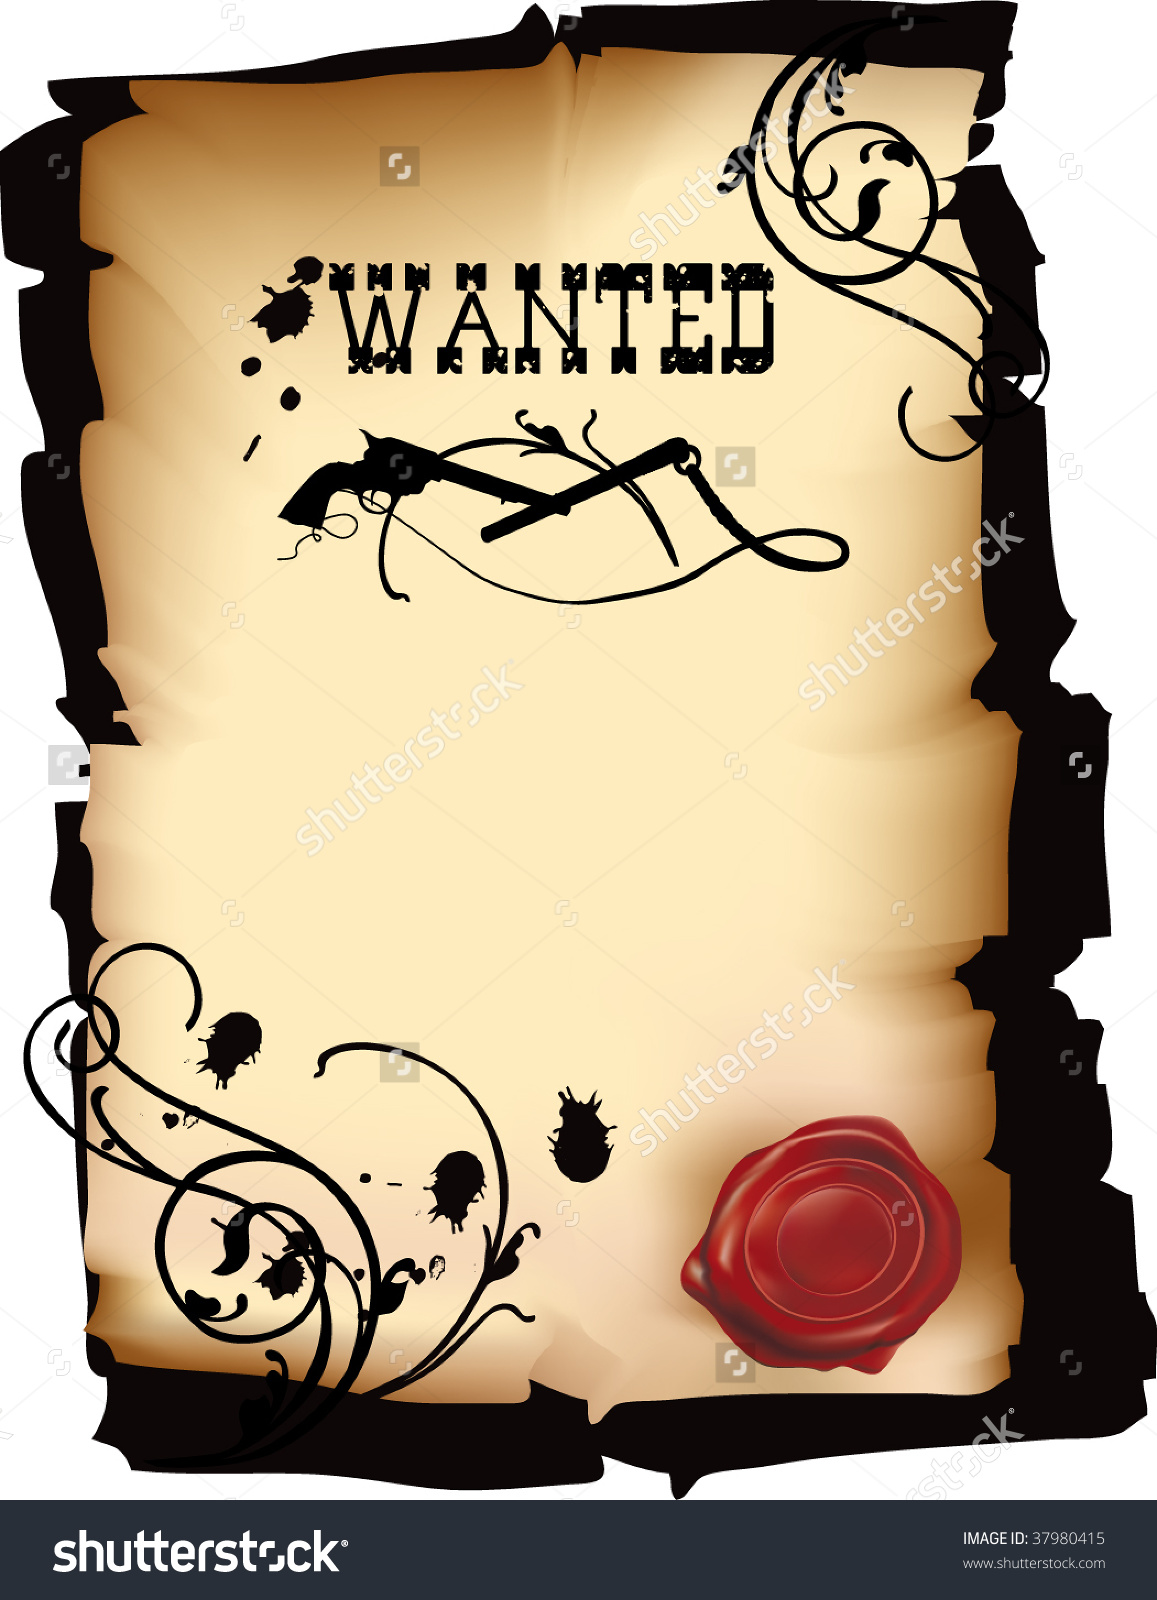 hight resolution of wild west wanted poster vector format stock vector 37980415